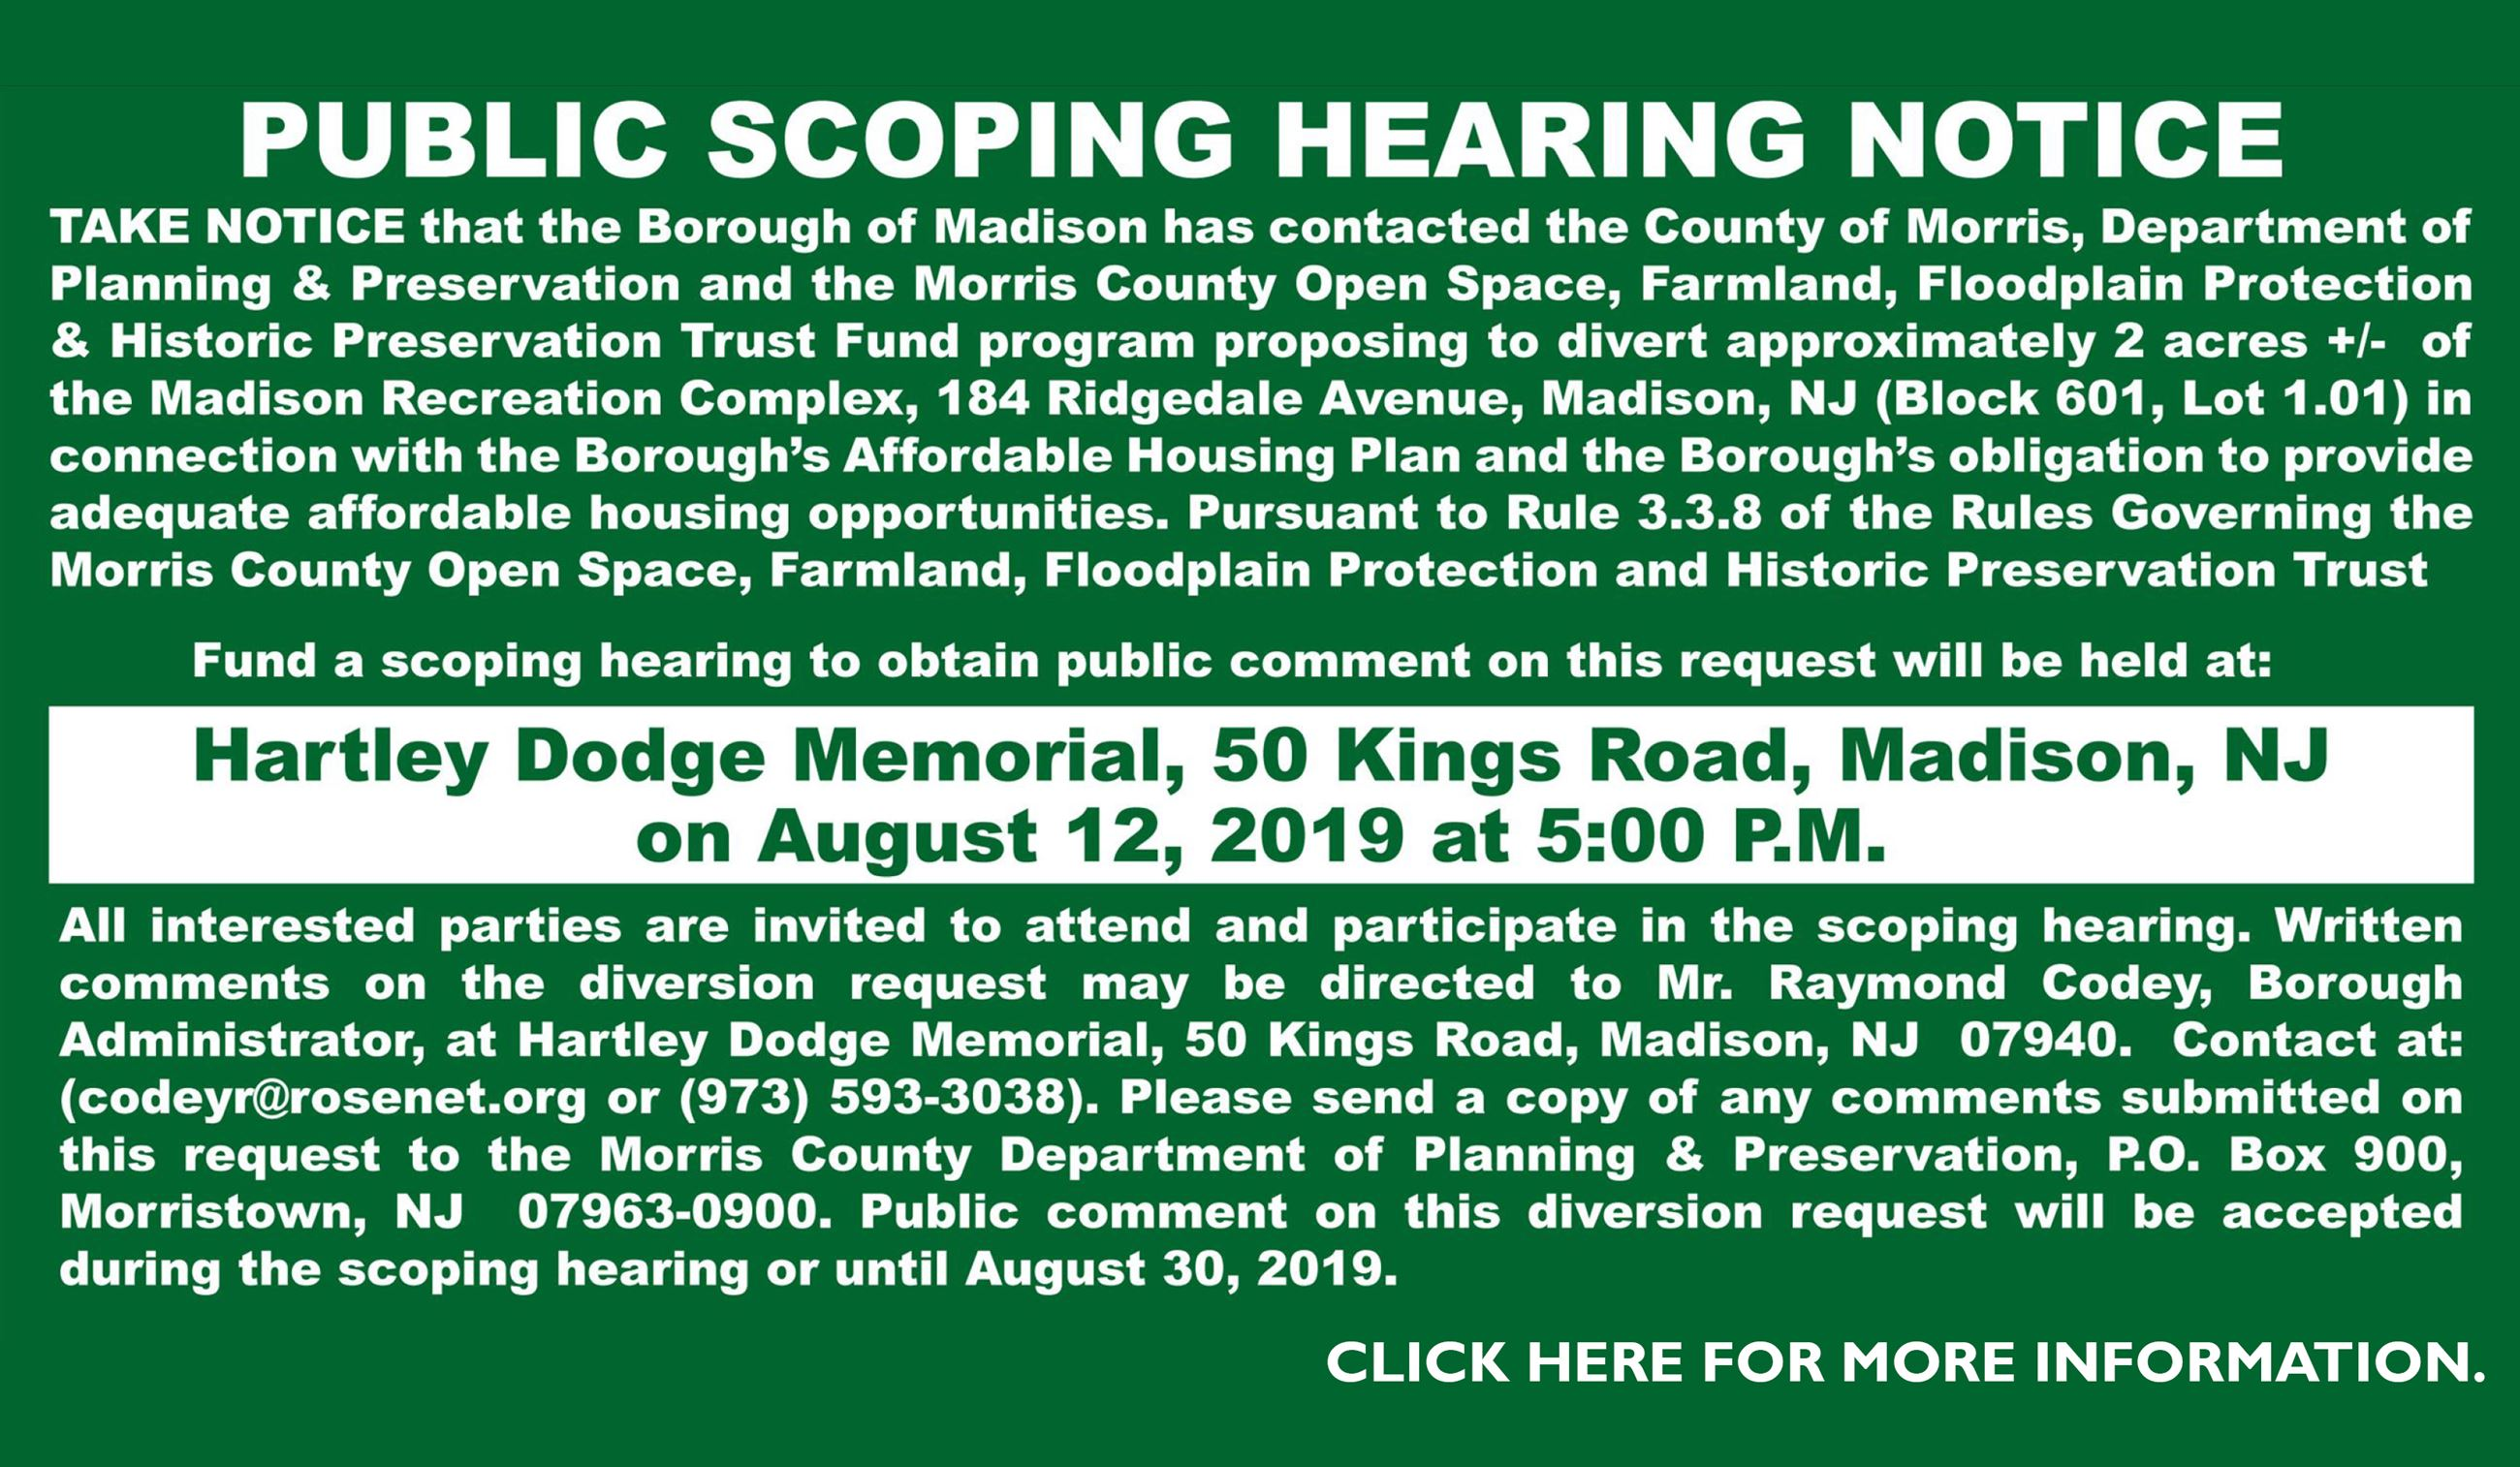 Public Scoping Hearing Notice